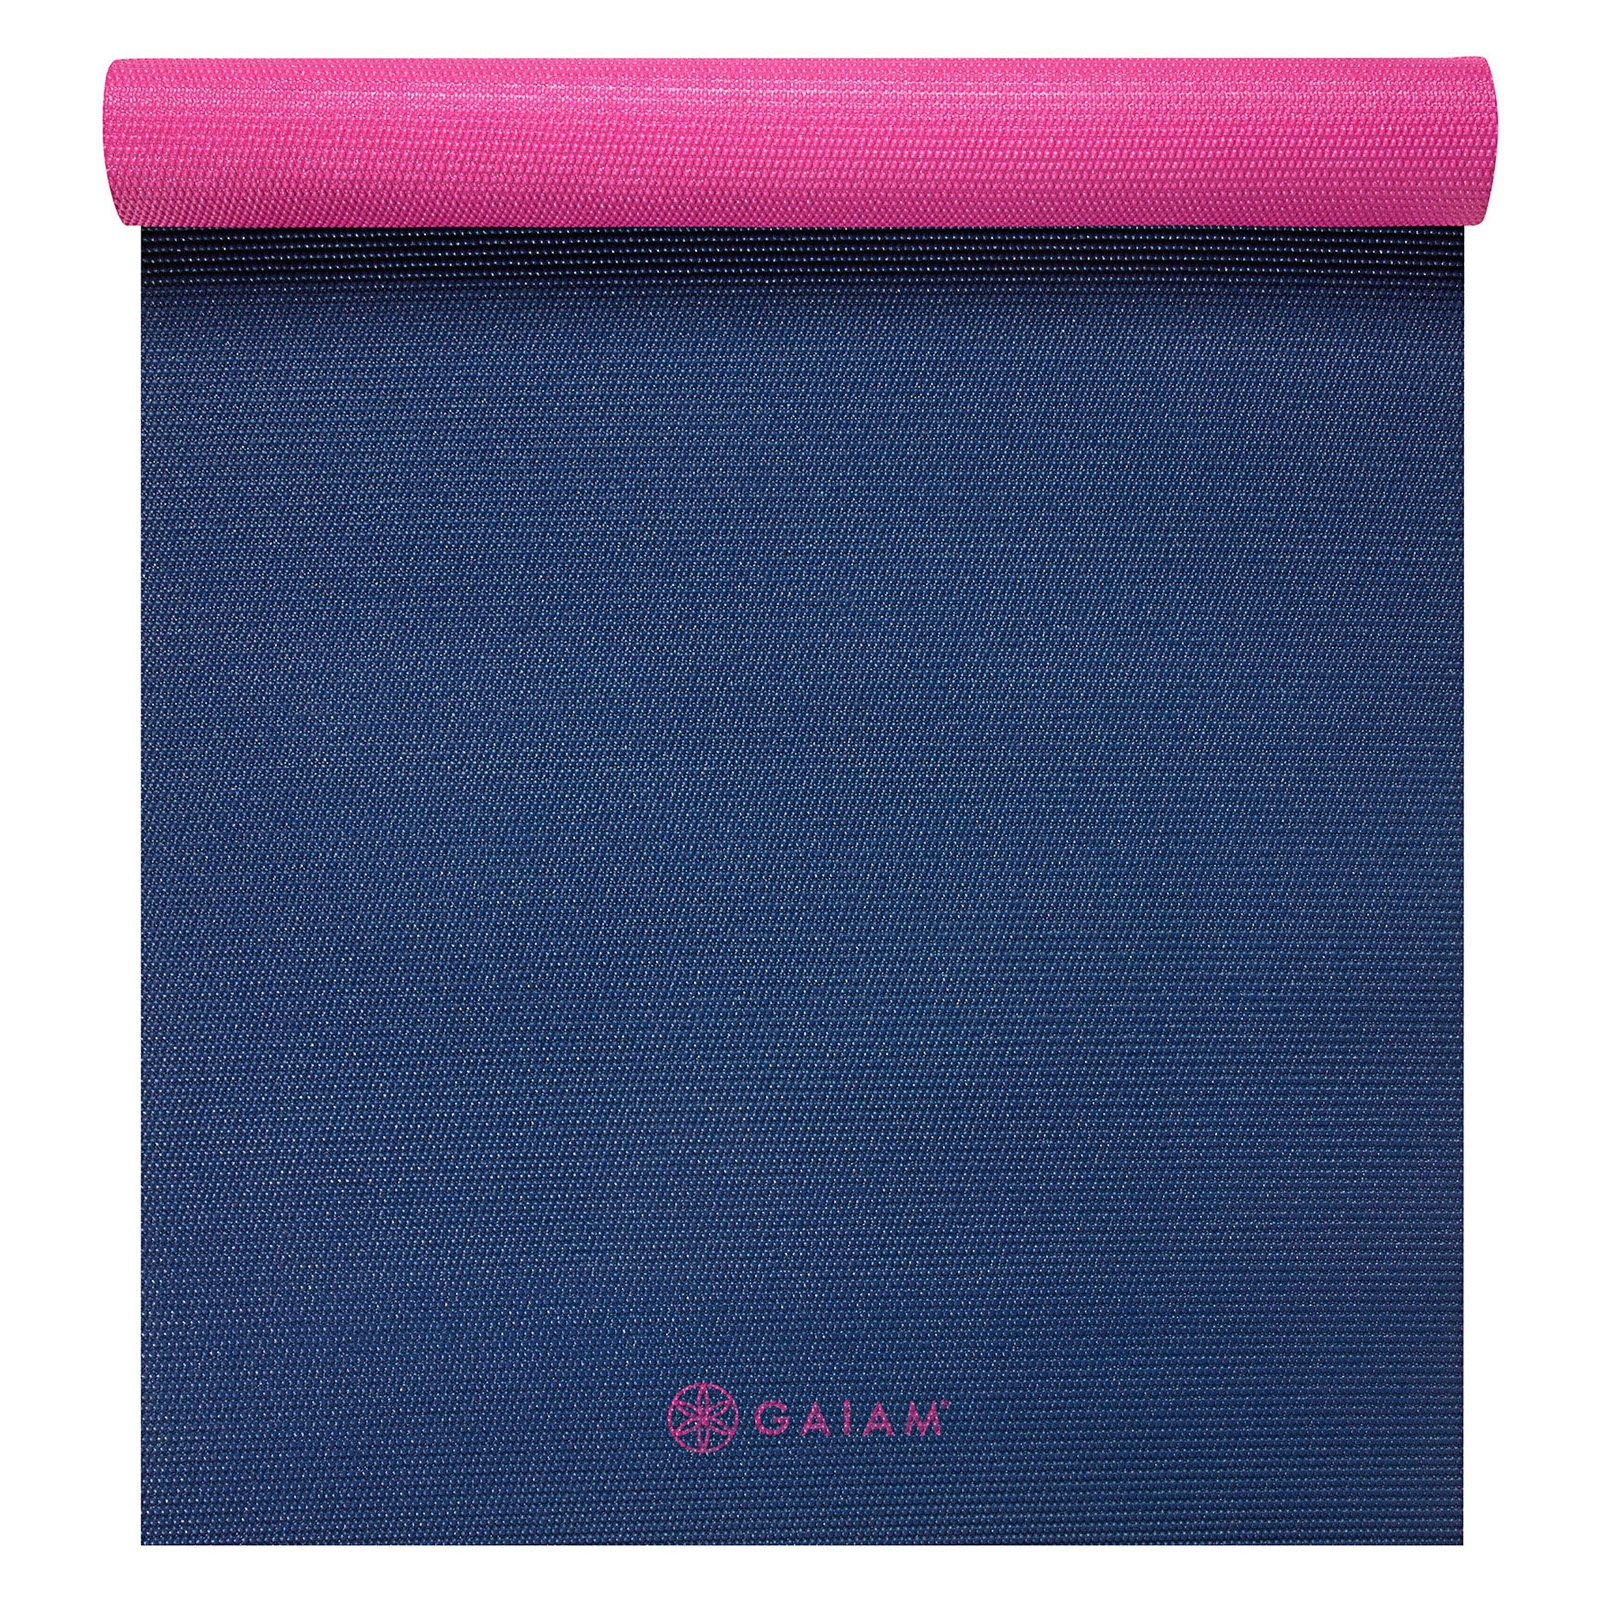 Gaiam 2-Color Yoga Mat, Granite Storm, 3mm